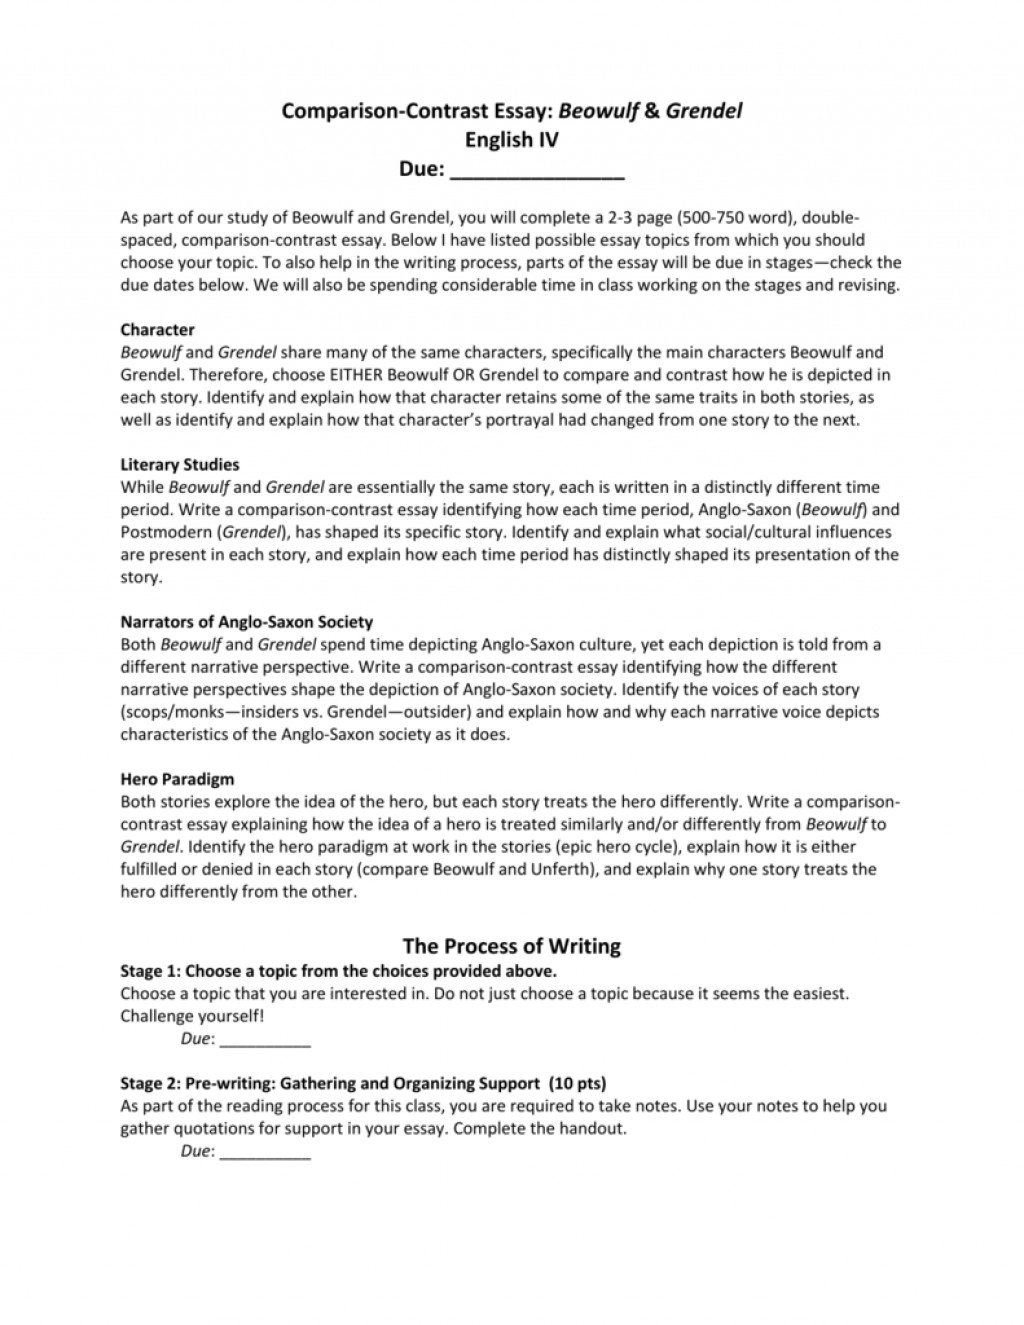 009 Essay Example 008061732 1 Comparing And Unique Contrasting Comparison Contrast Sample Pdf Compare Structure University Topics On Health Large